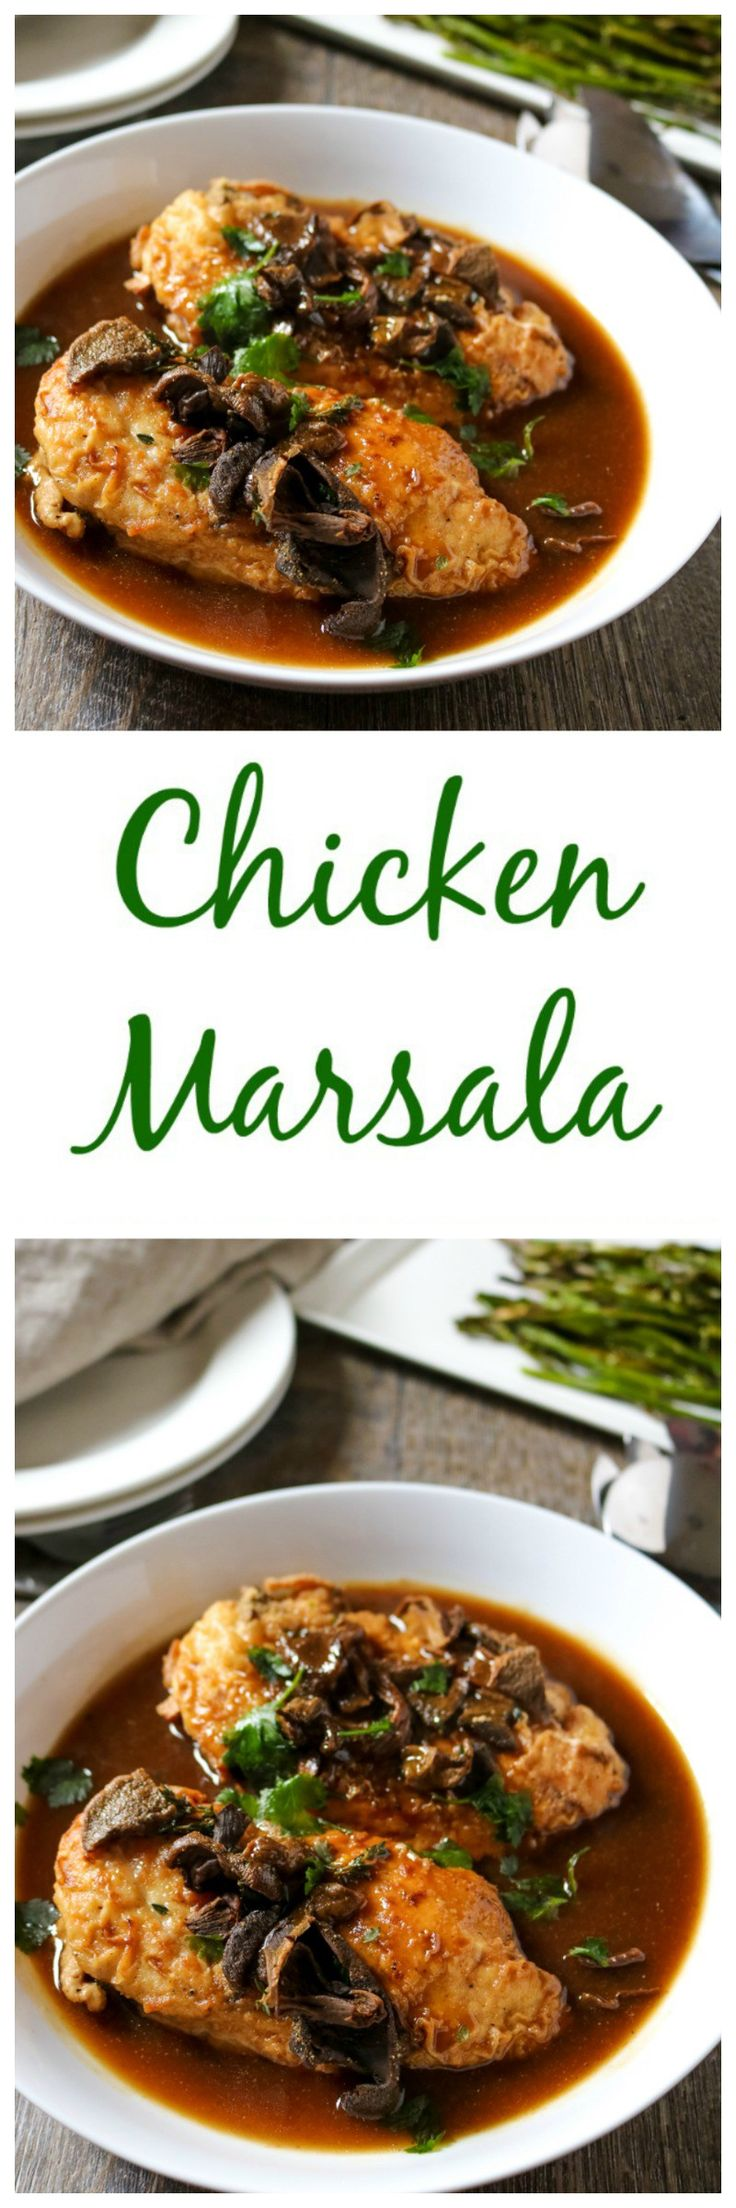 Chicken Marsala: An impressive, yet easy, recipe for Chicken Marsala that rivals any restaurant out there. Pair with roasted asparagus, and you have the perfect meal for a date-night at home.